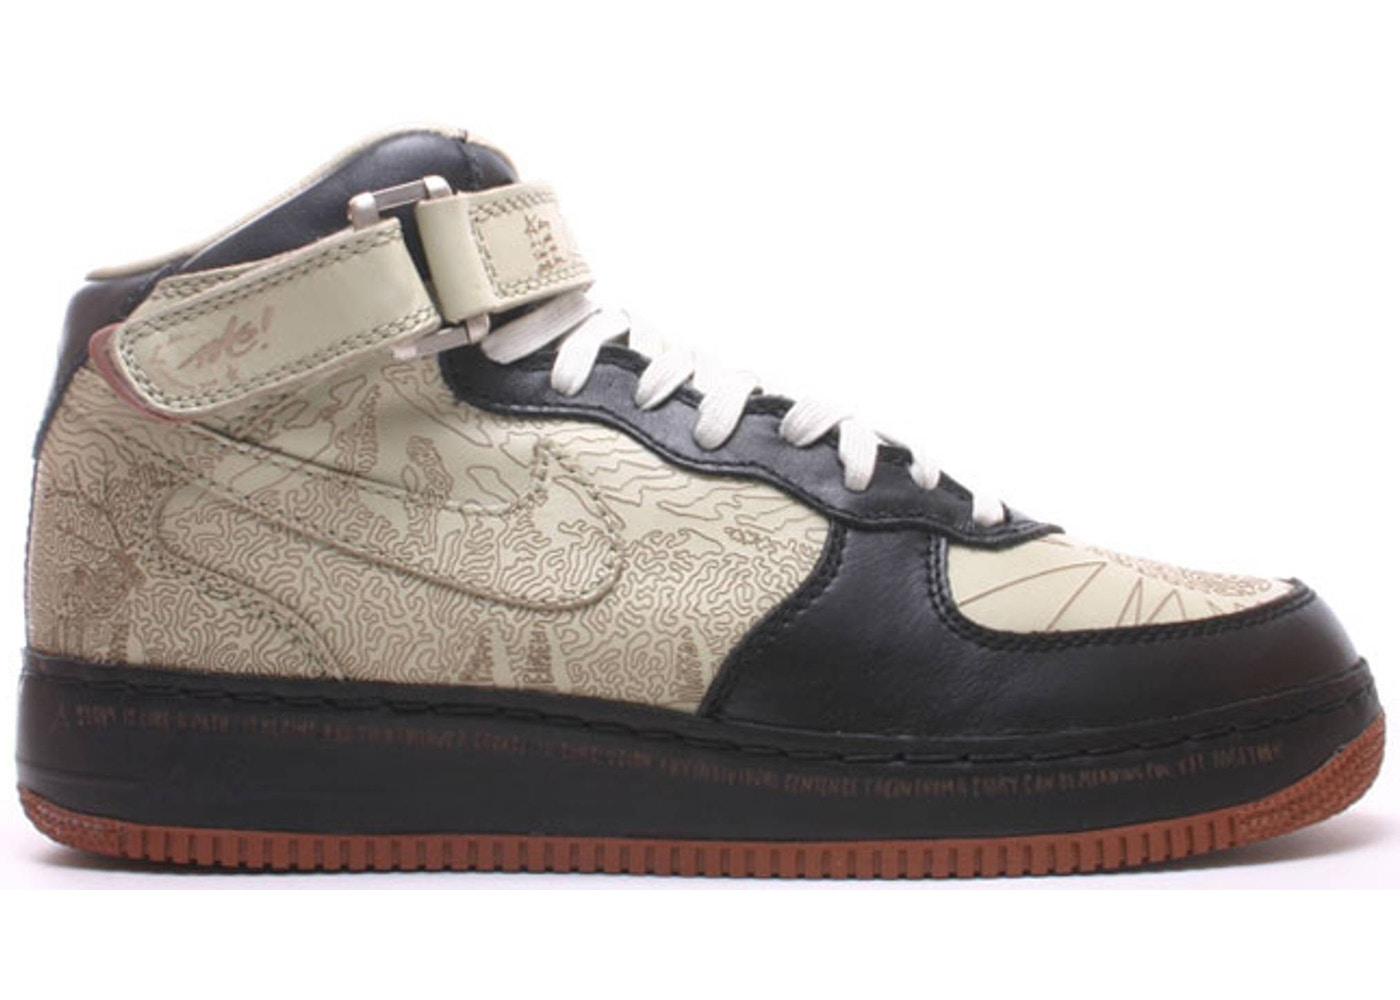 Nike Air Force 1 Mid Insideout Laser - 309379-011